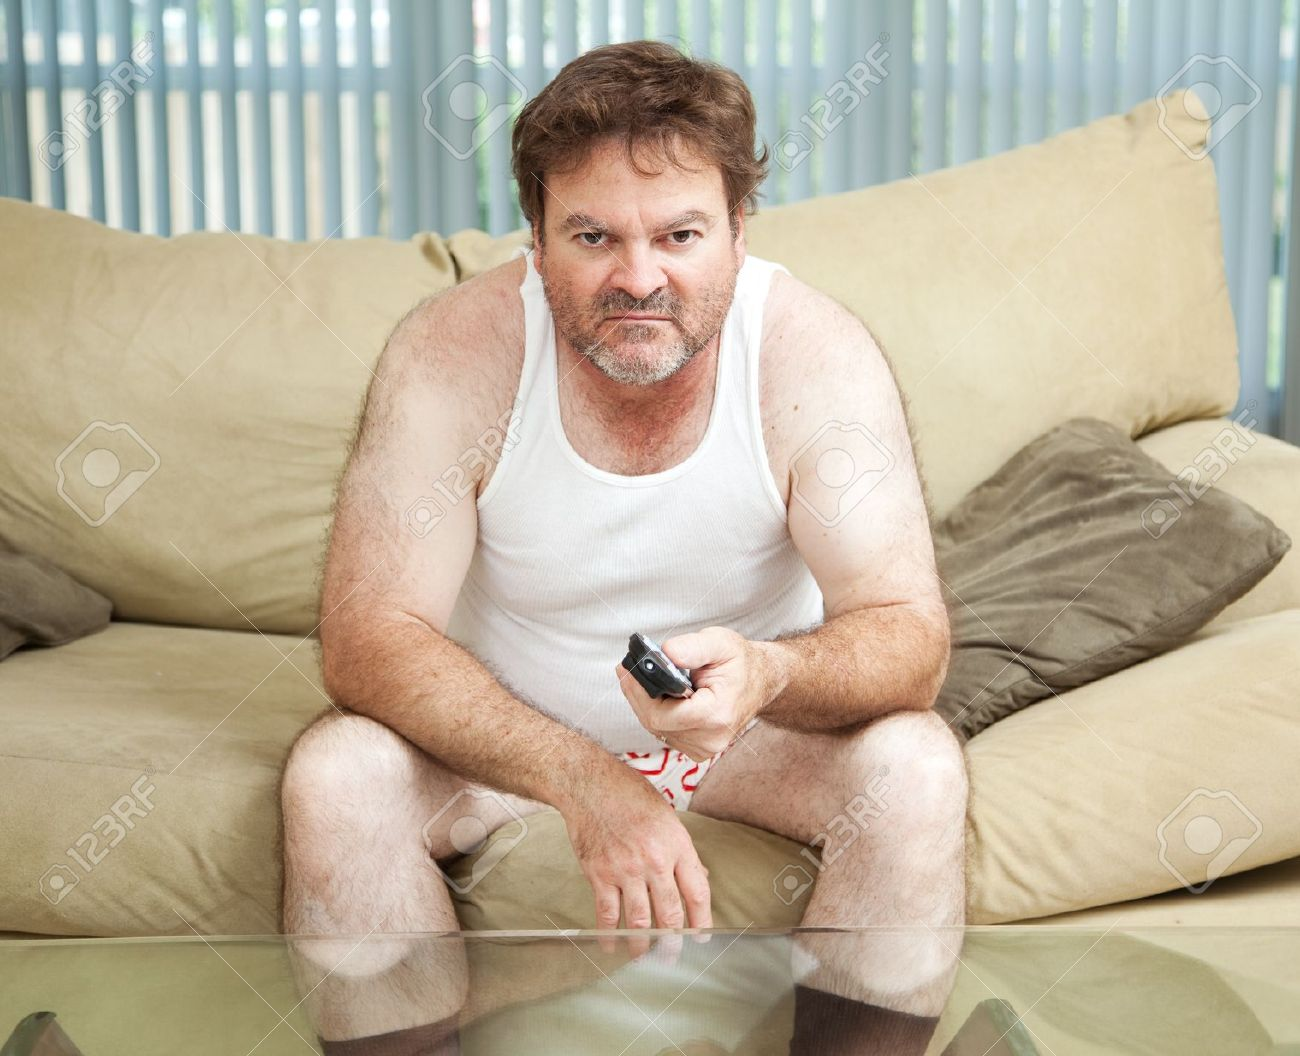 21788302-Unemployed-man-sitting-home-watching-TV-bored-and-discouraged--Stock-Photo.jpg